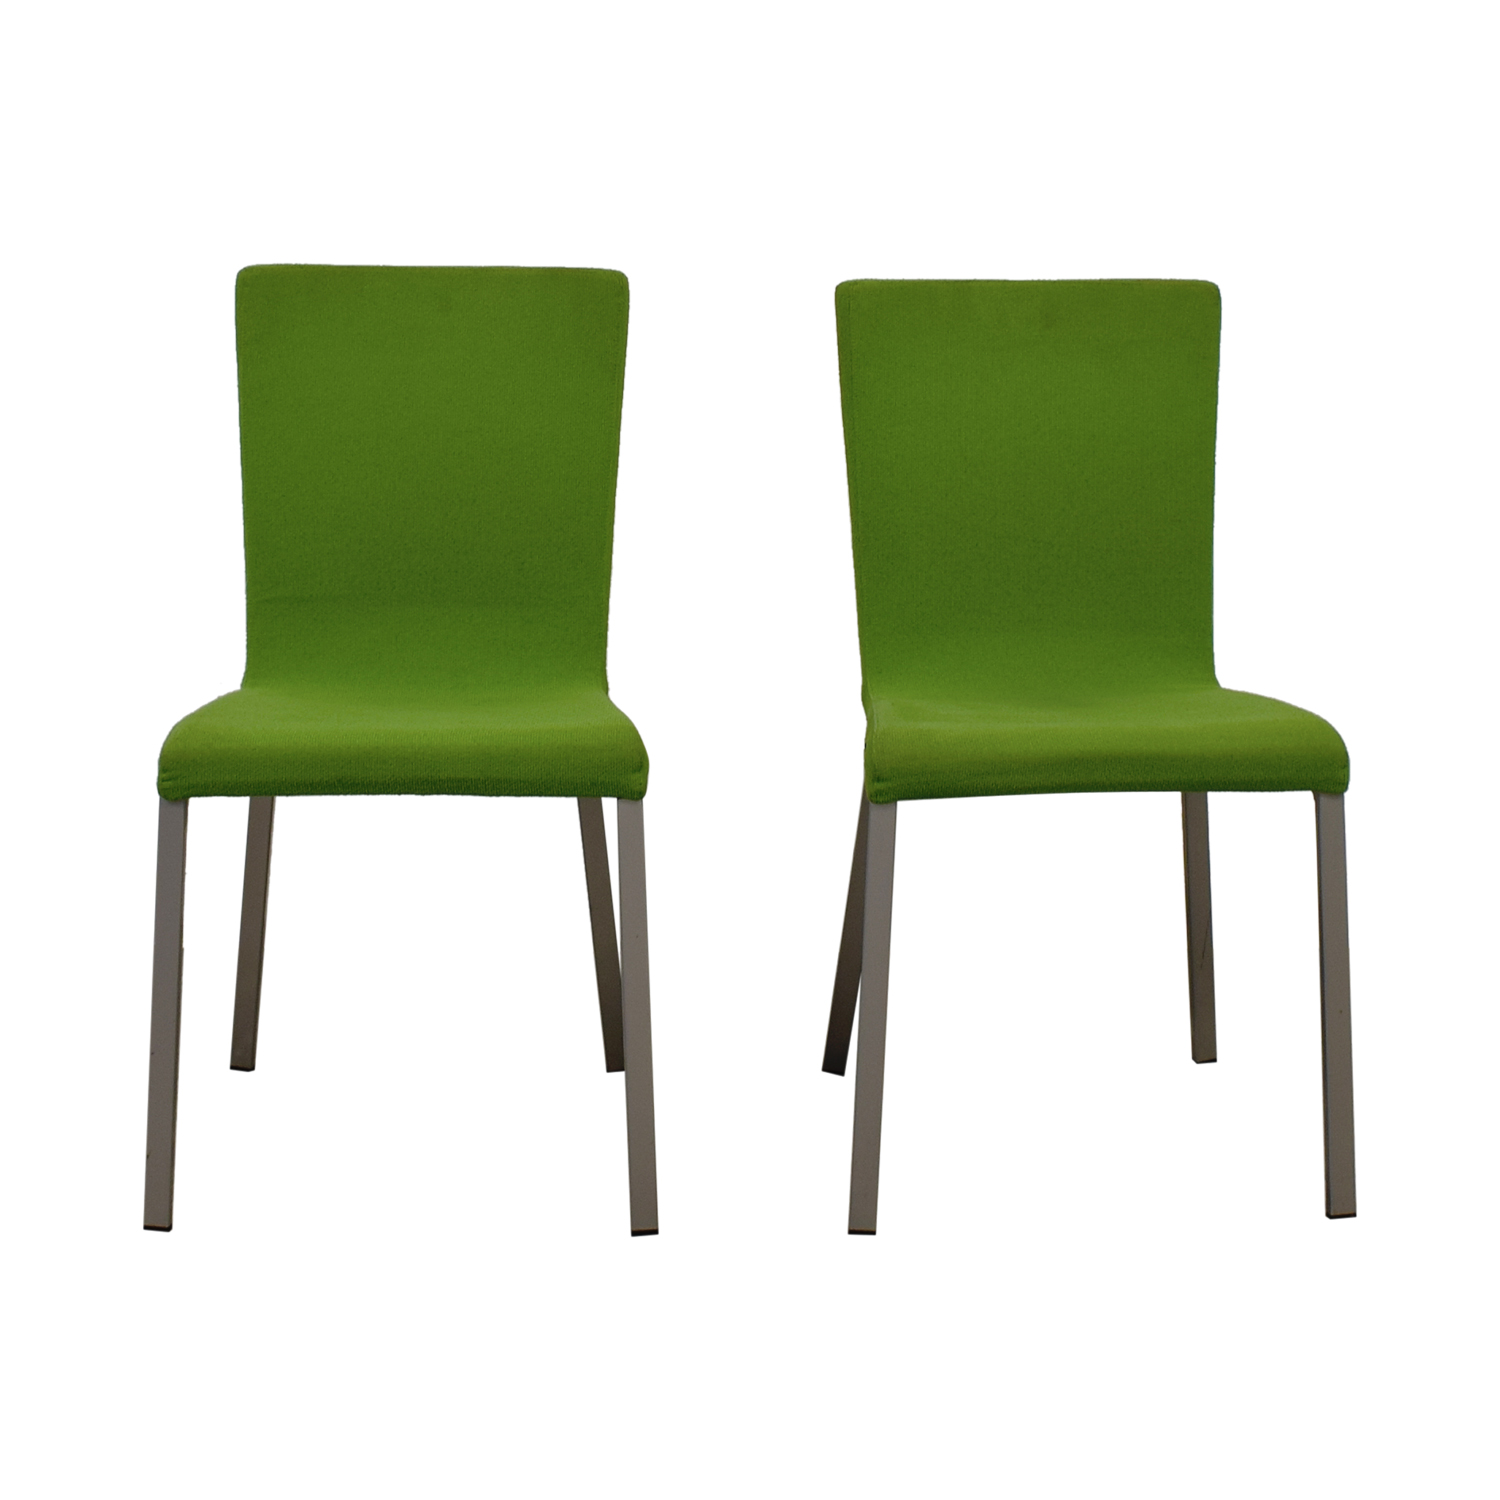 Calligaris Calligaris Green Club Chairs second hand